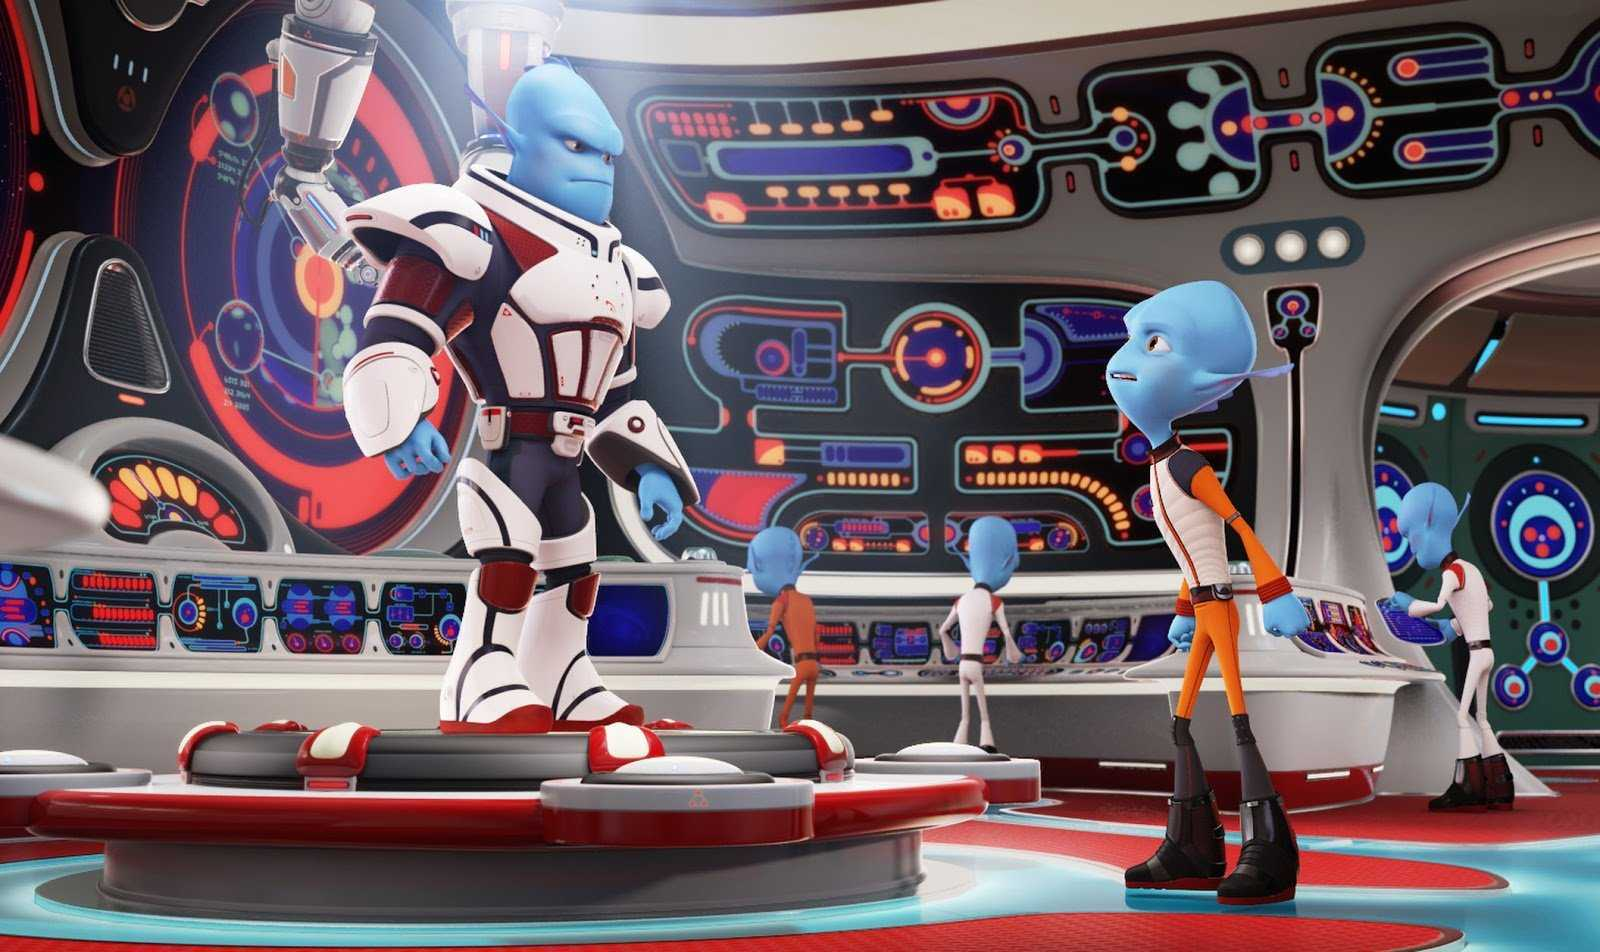 Scorch Supernova (voiced by Brendan Fraser) and his brother Gary (voiced by Rob Corddry) in Escape from Planet Earth (2013)